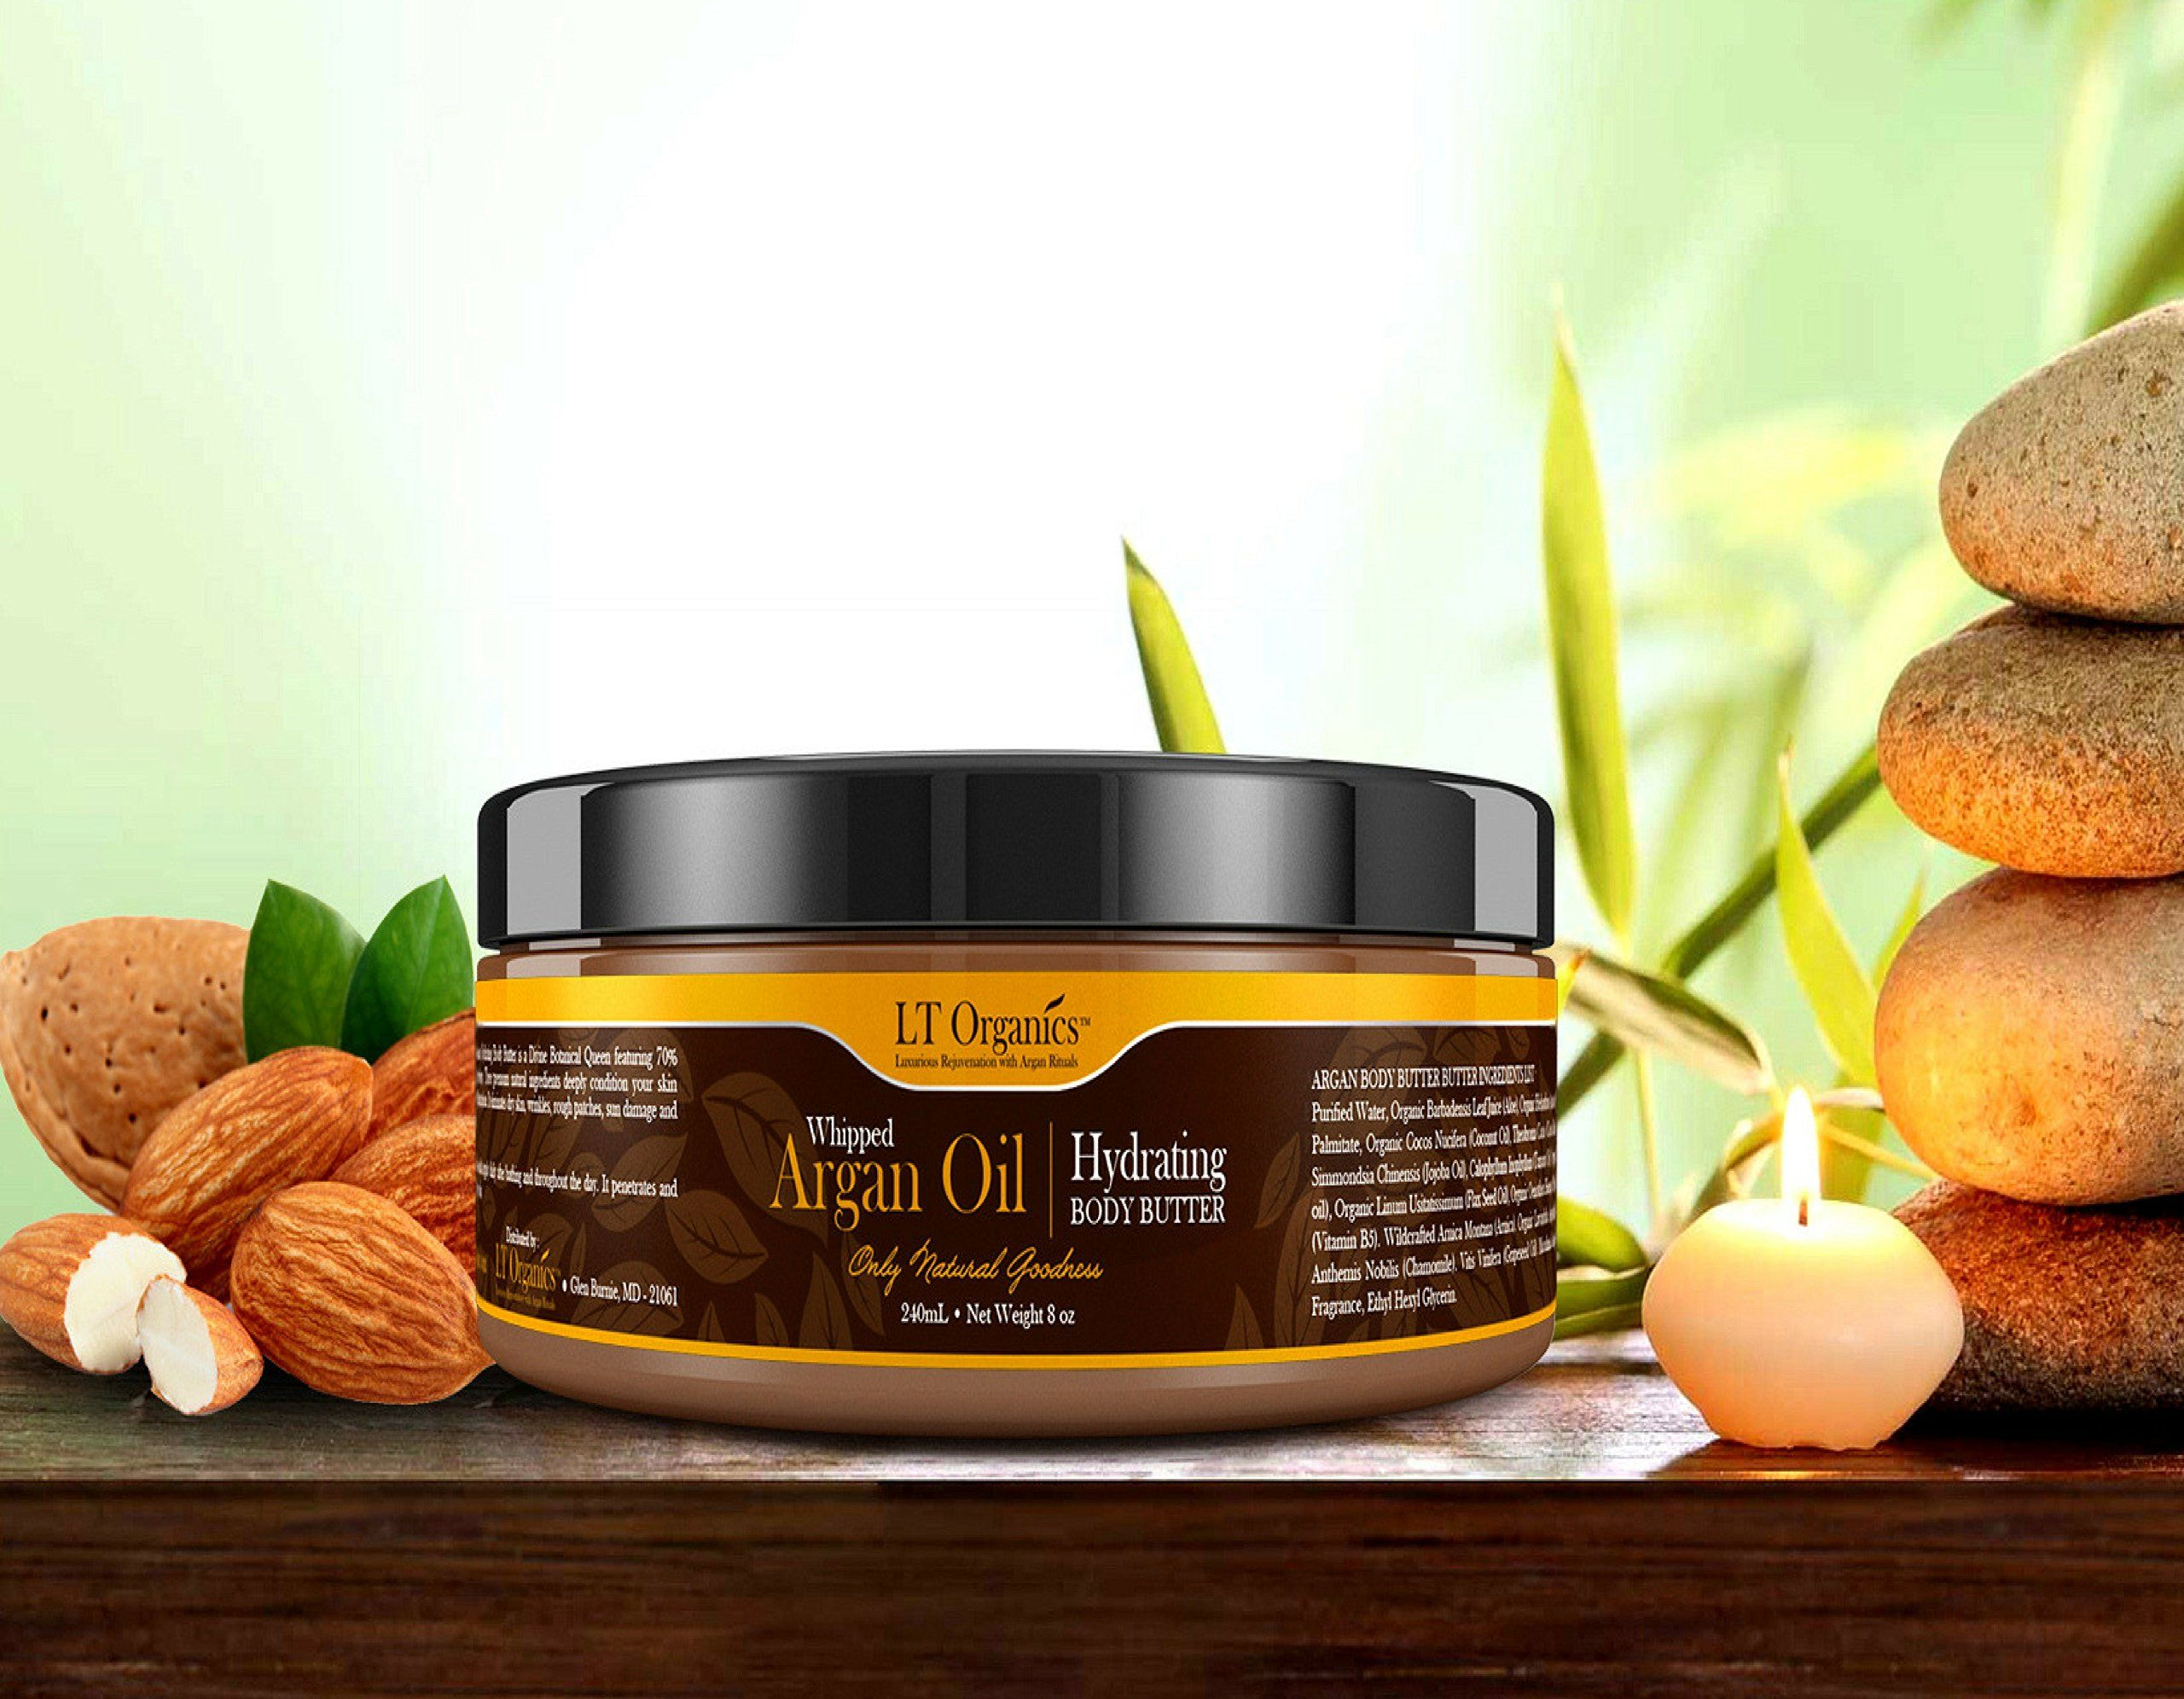 Natural Whipped Argan Oil Body Butter Paraben Free Moisturizer For Dry Skin Psoria Whipped Argan Oil Body Butter Moisturizer For Dry Skin Paraben Free Products